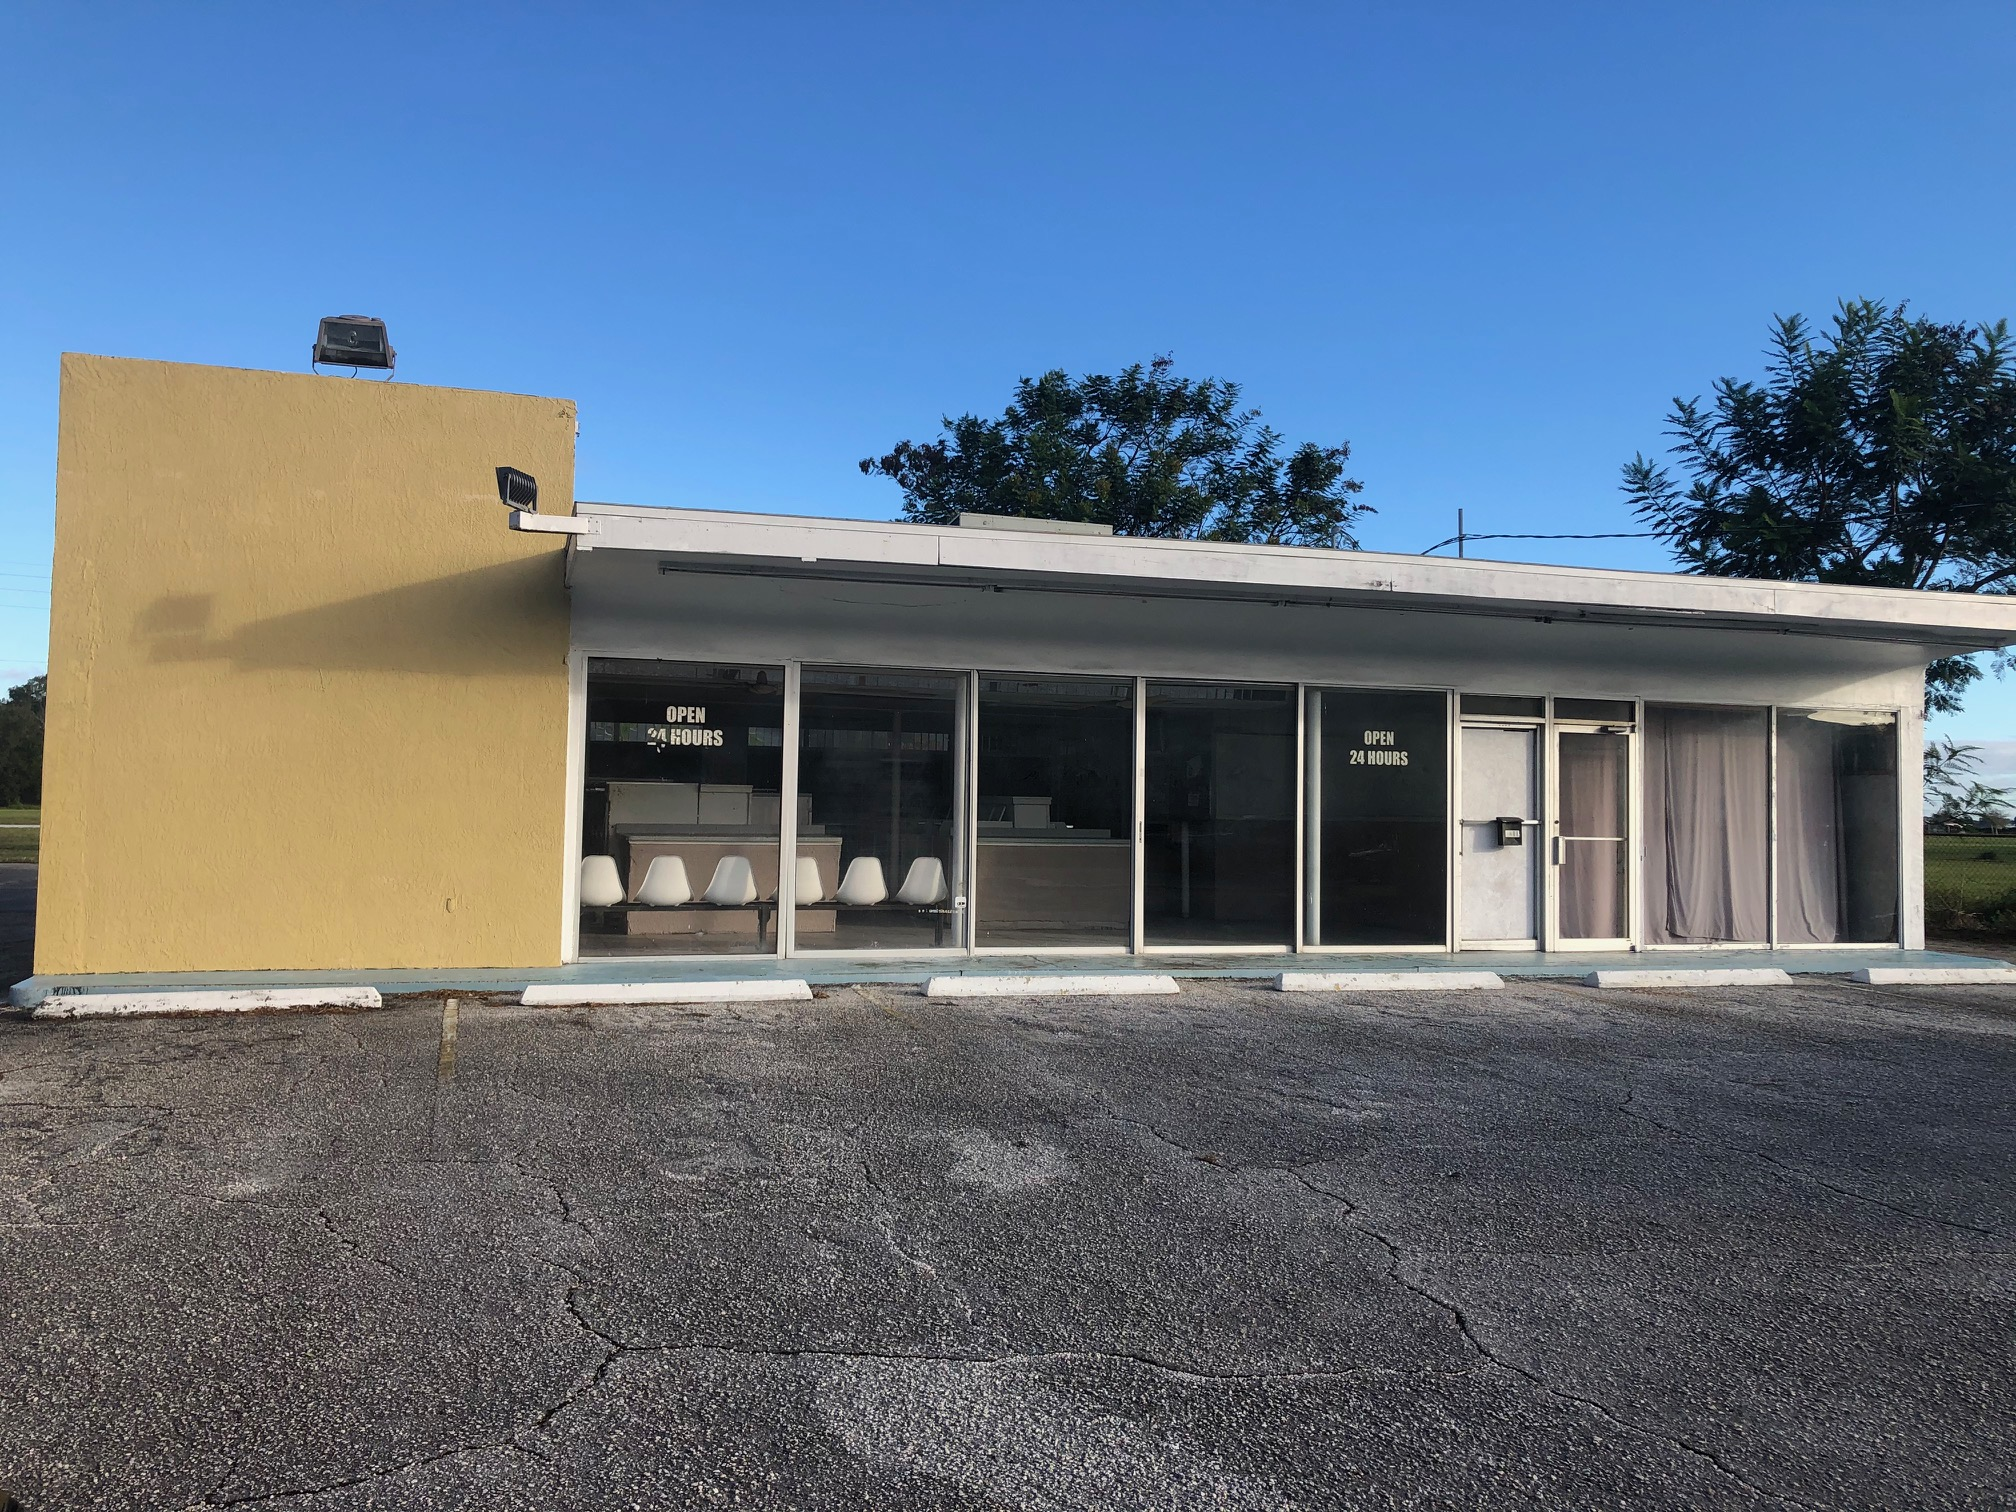 Laundromat with Retail Space